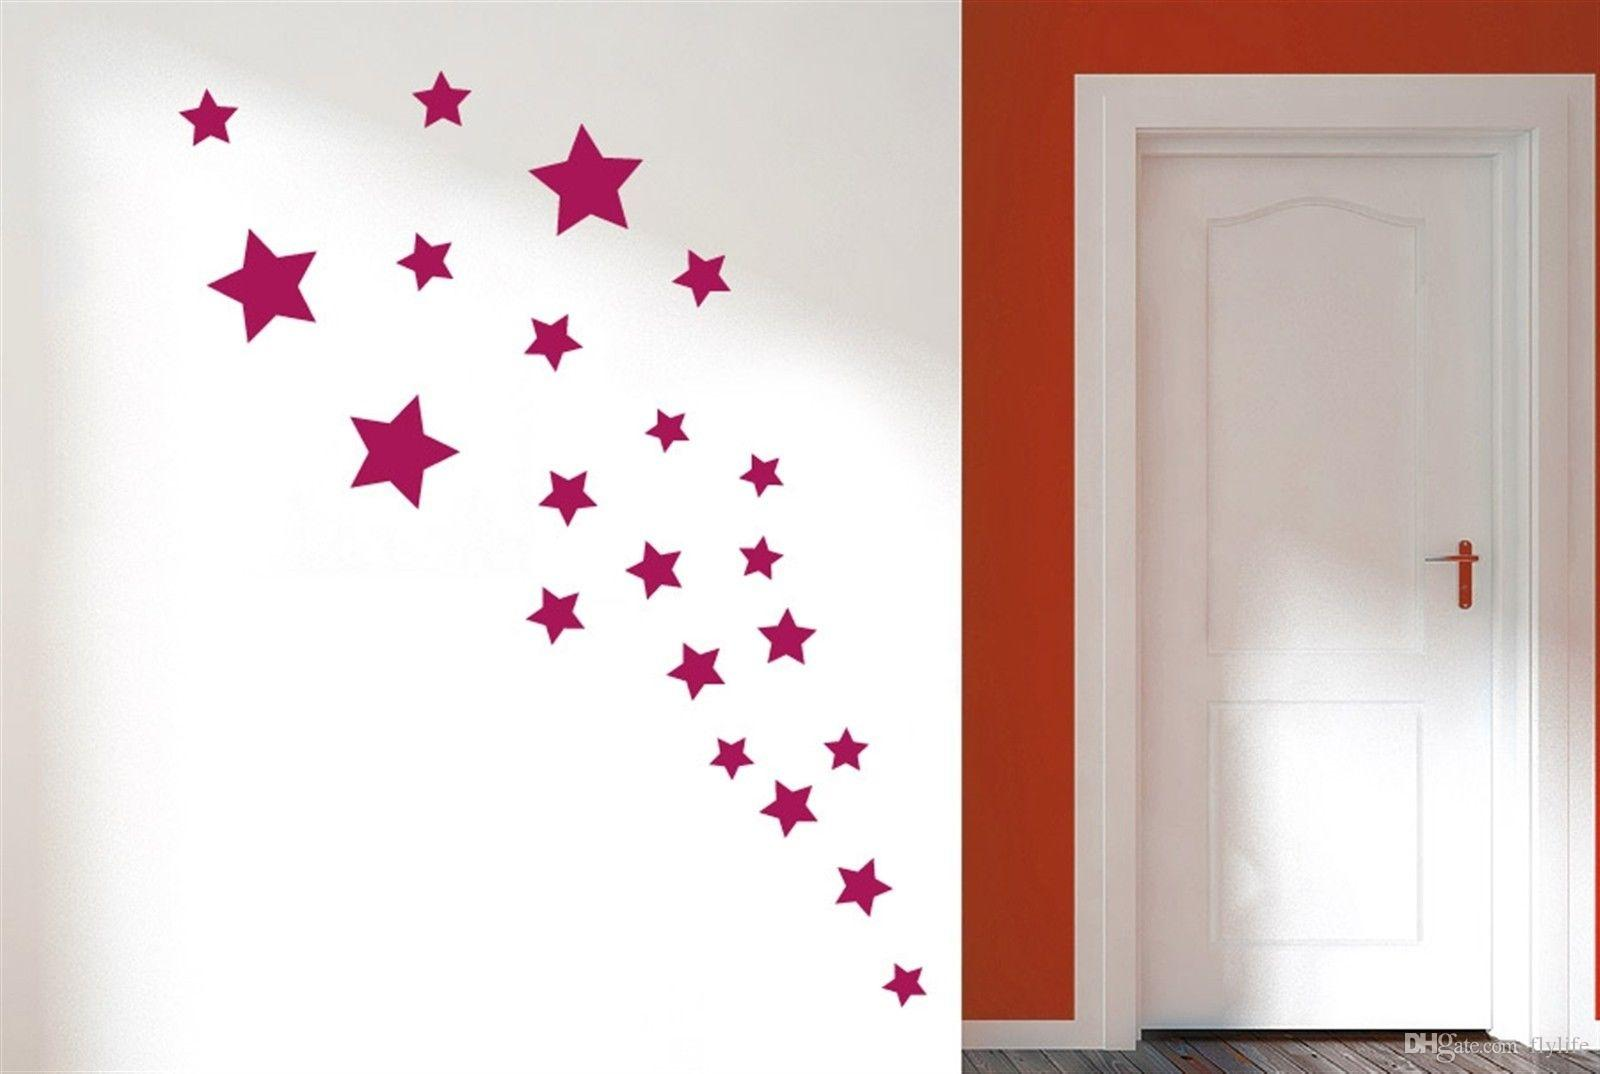 Removable various color stars decorative wall stickers vinyl wall removable various color stars decorative wall stickers vinyl wall art decals for kids rooms home decor wall art stickers decorative wall decals kids room amipublicfo Gallery